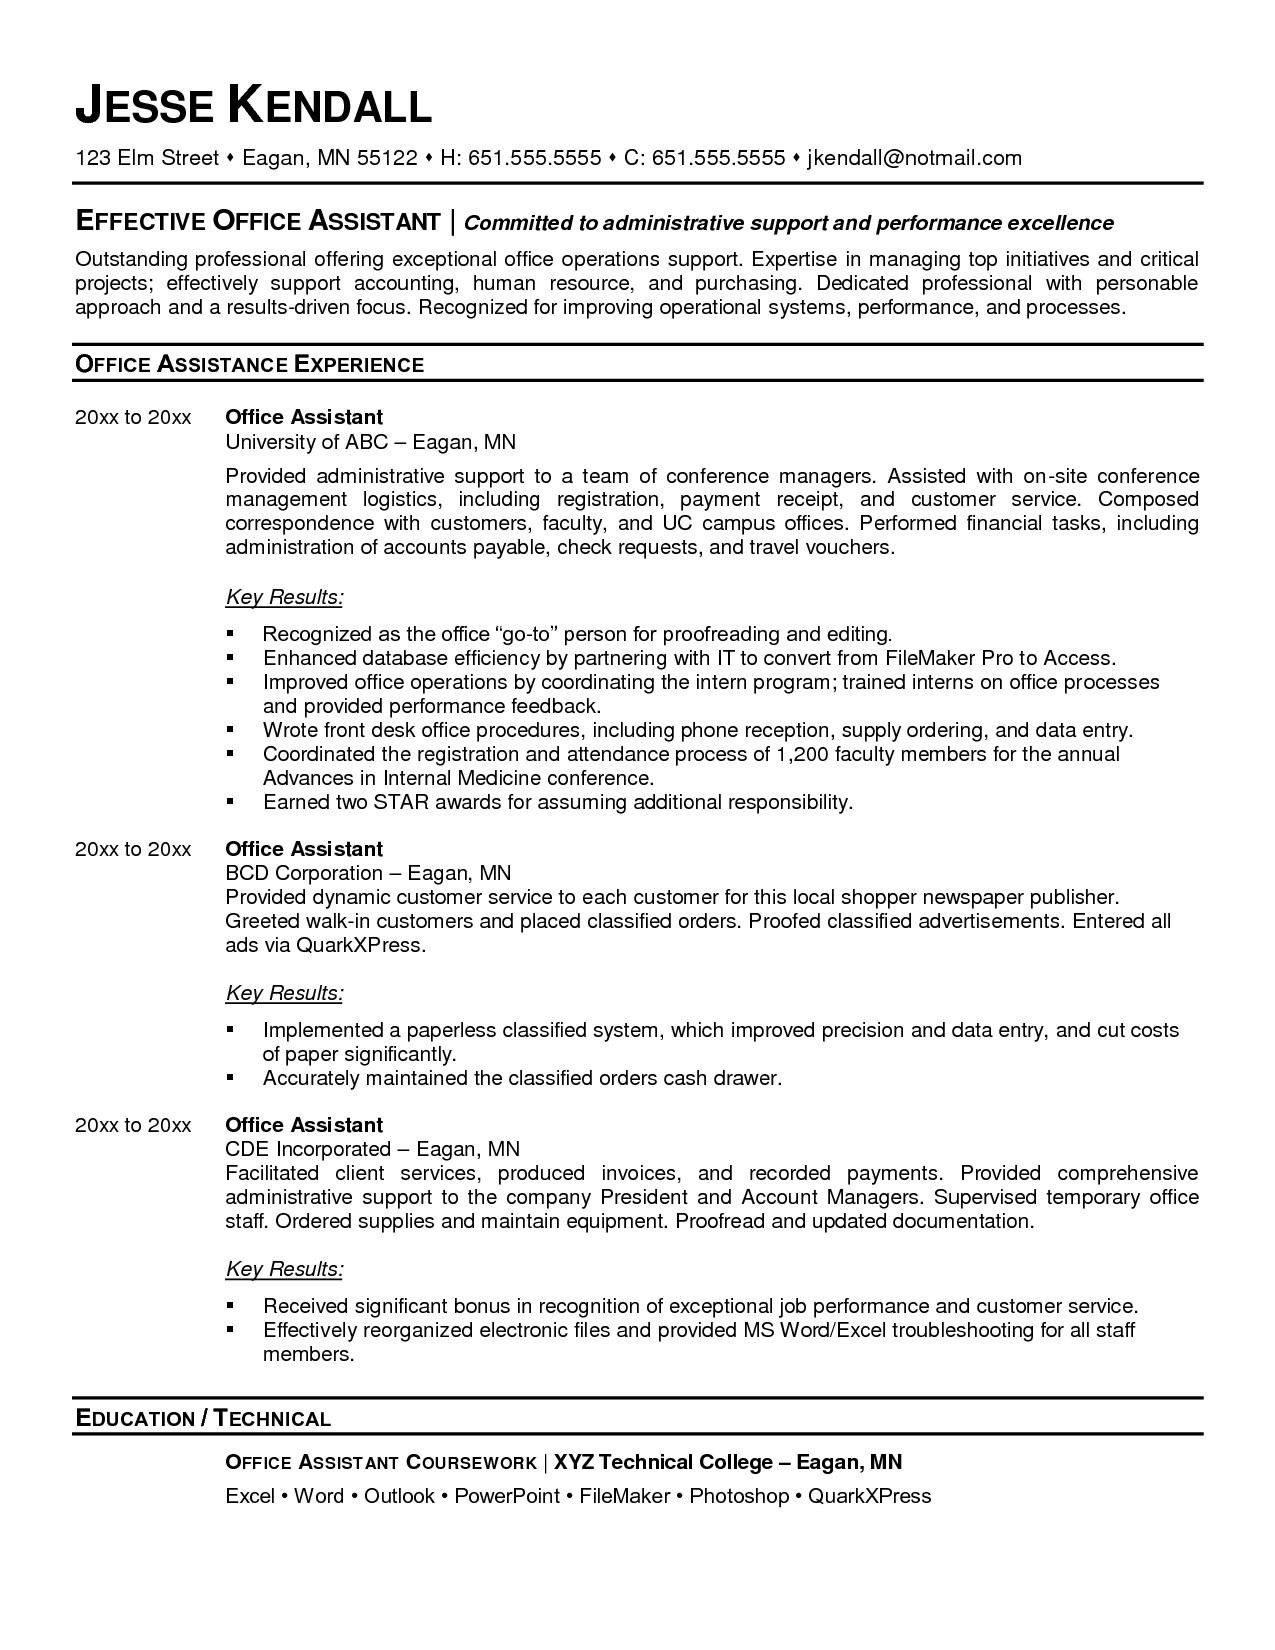 Medical Office Manager Resume Samples - Medical Fice Manager Resume Examples New Medical Fice assistant